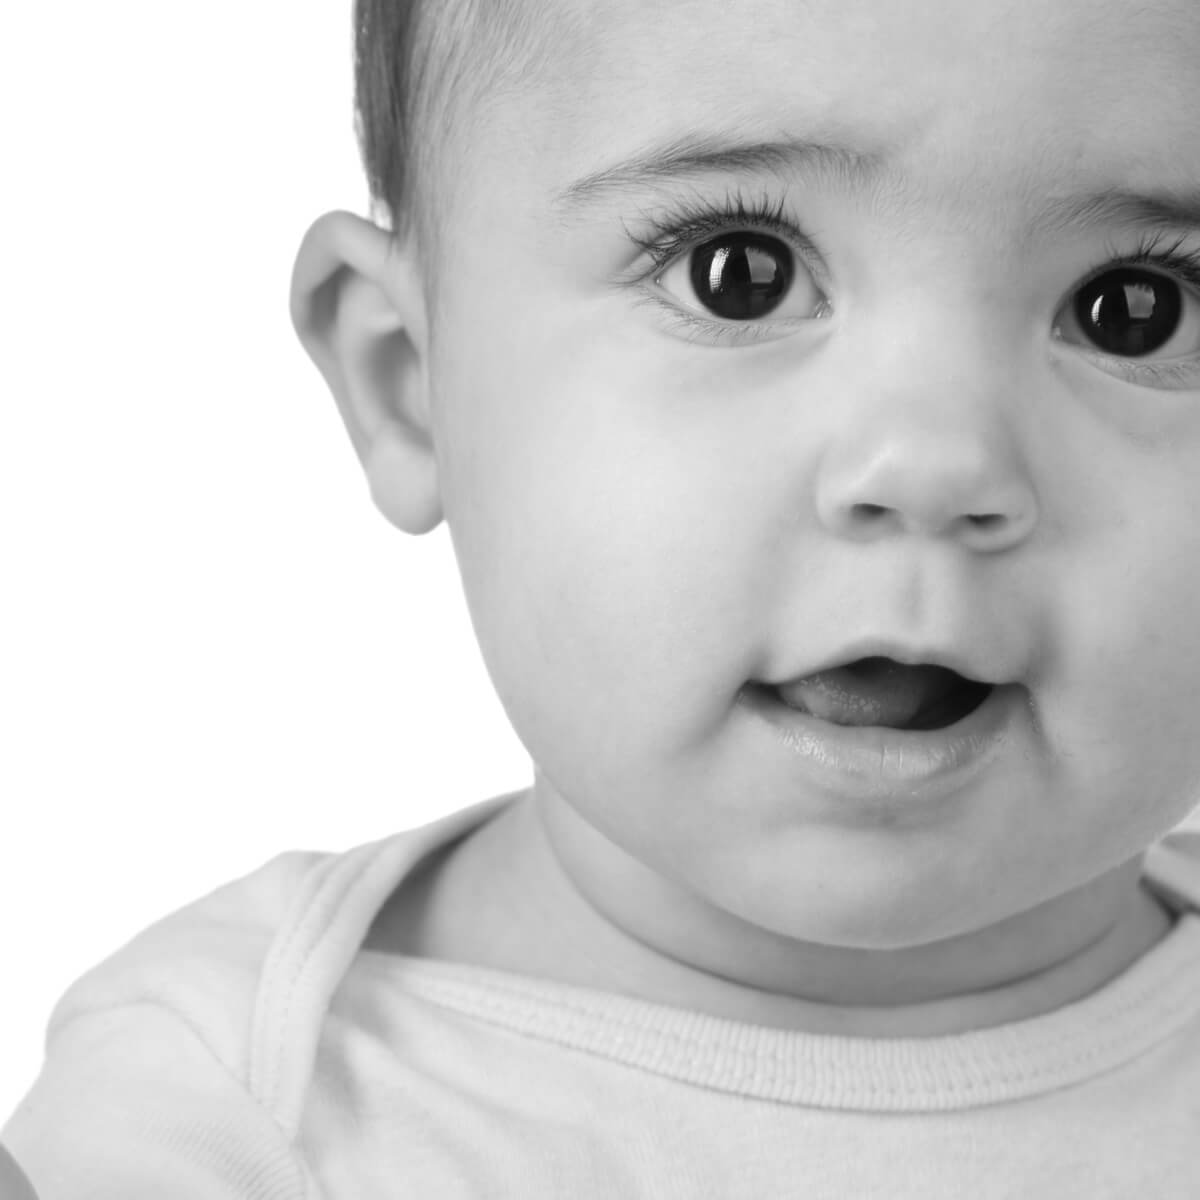 Baby Portrait with artistic crop